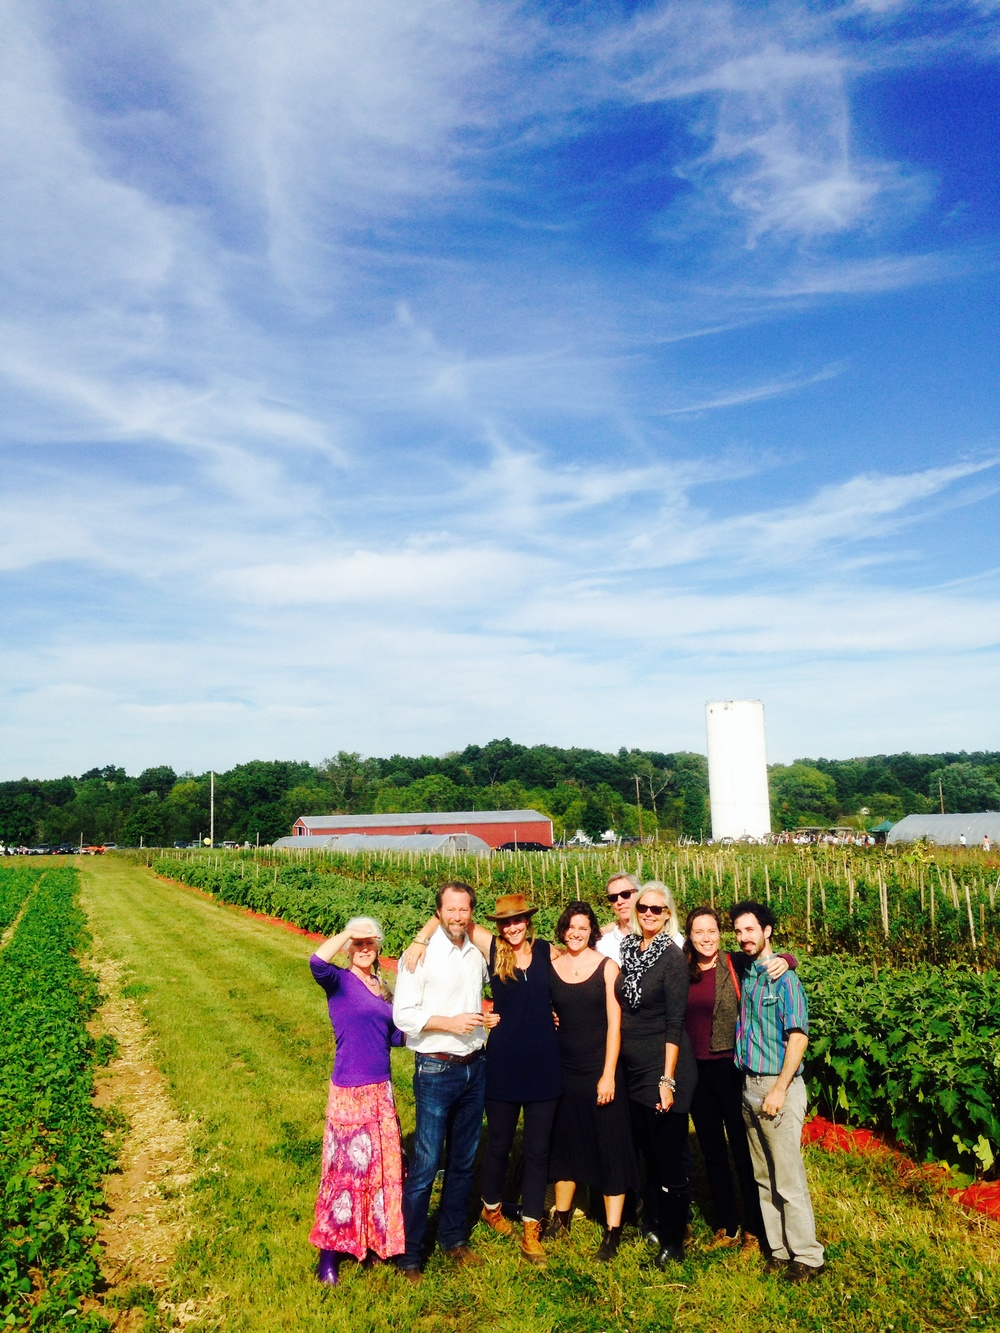 My extended family at Blooming Glen Farm in Perkaise Pennsylvania